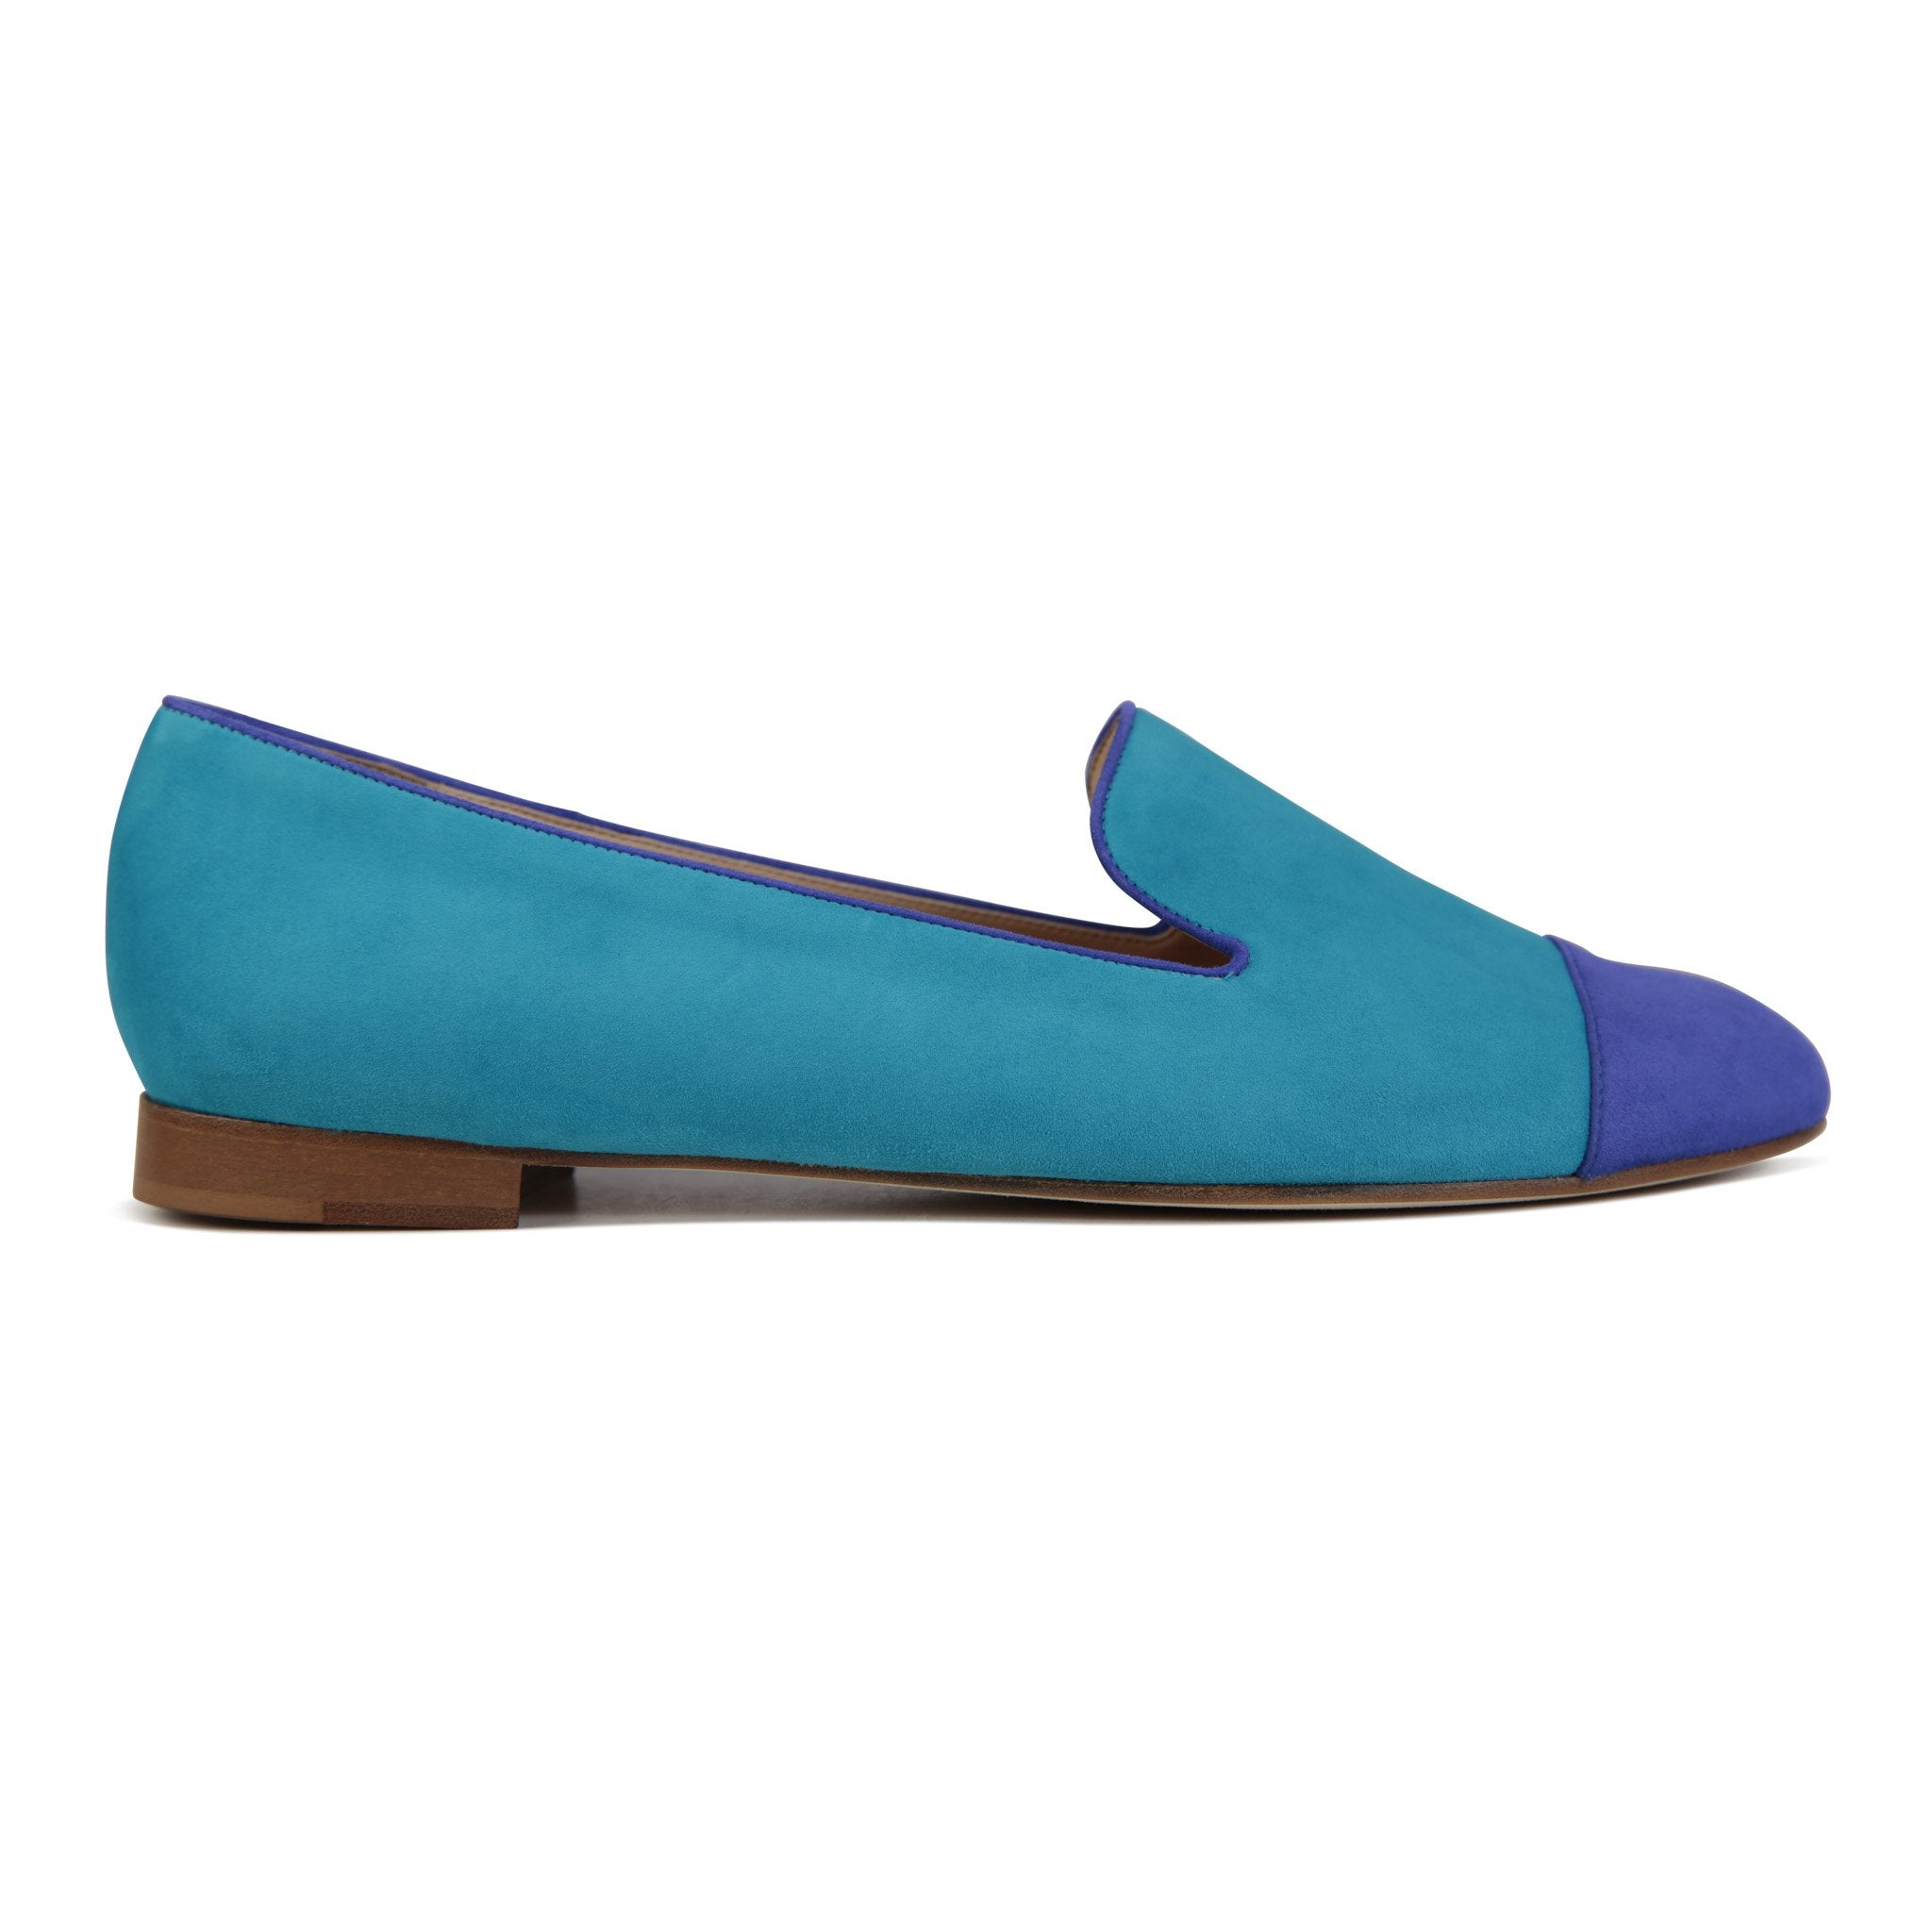 RAVENNA - Velukid Bella Aqua + Bella Donna, VIAJIYU - Women's Hand Made Sustainable Luxury Shoes. Made in Italy. Made to Order.